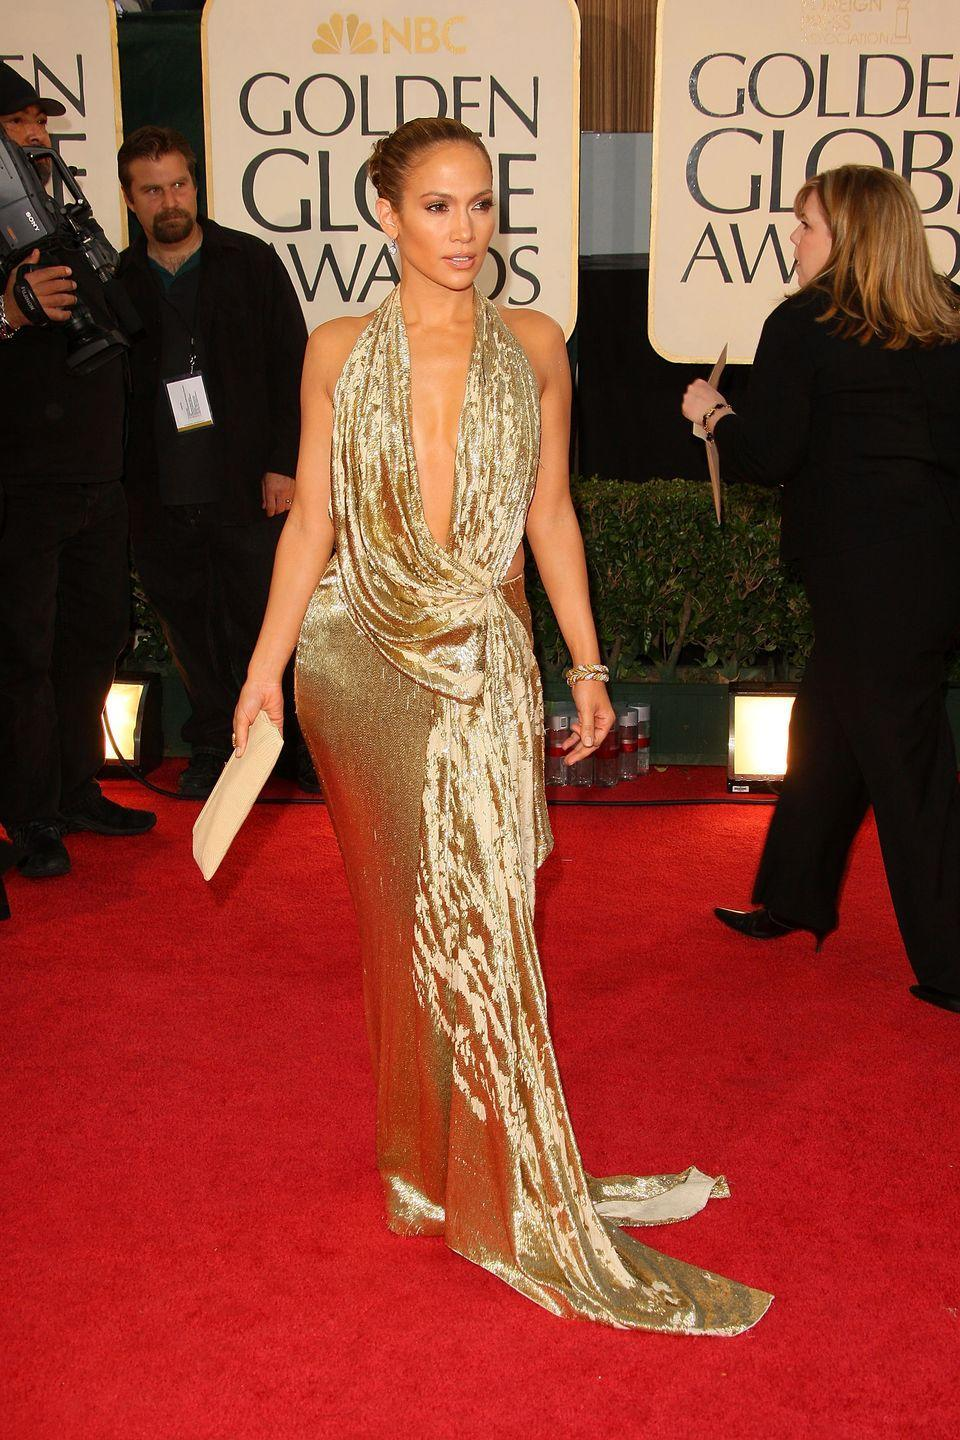 <p><strong>When: </strong>January 2009</p><p><strong>Where: </strong>The Golden Globes</p><p><strong>Wearing: </strong>Marchesa</p>